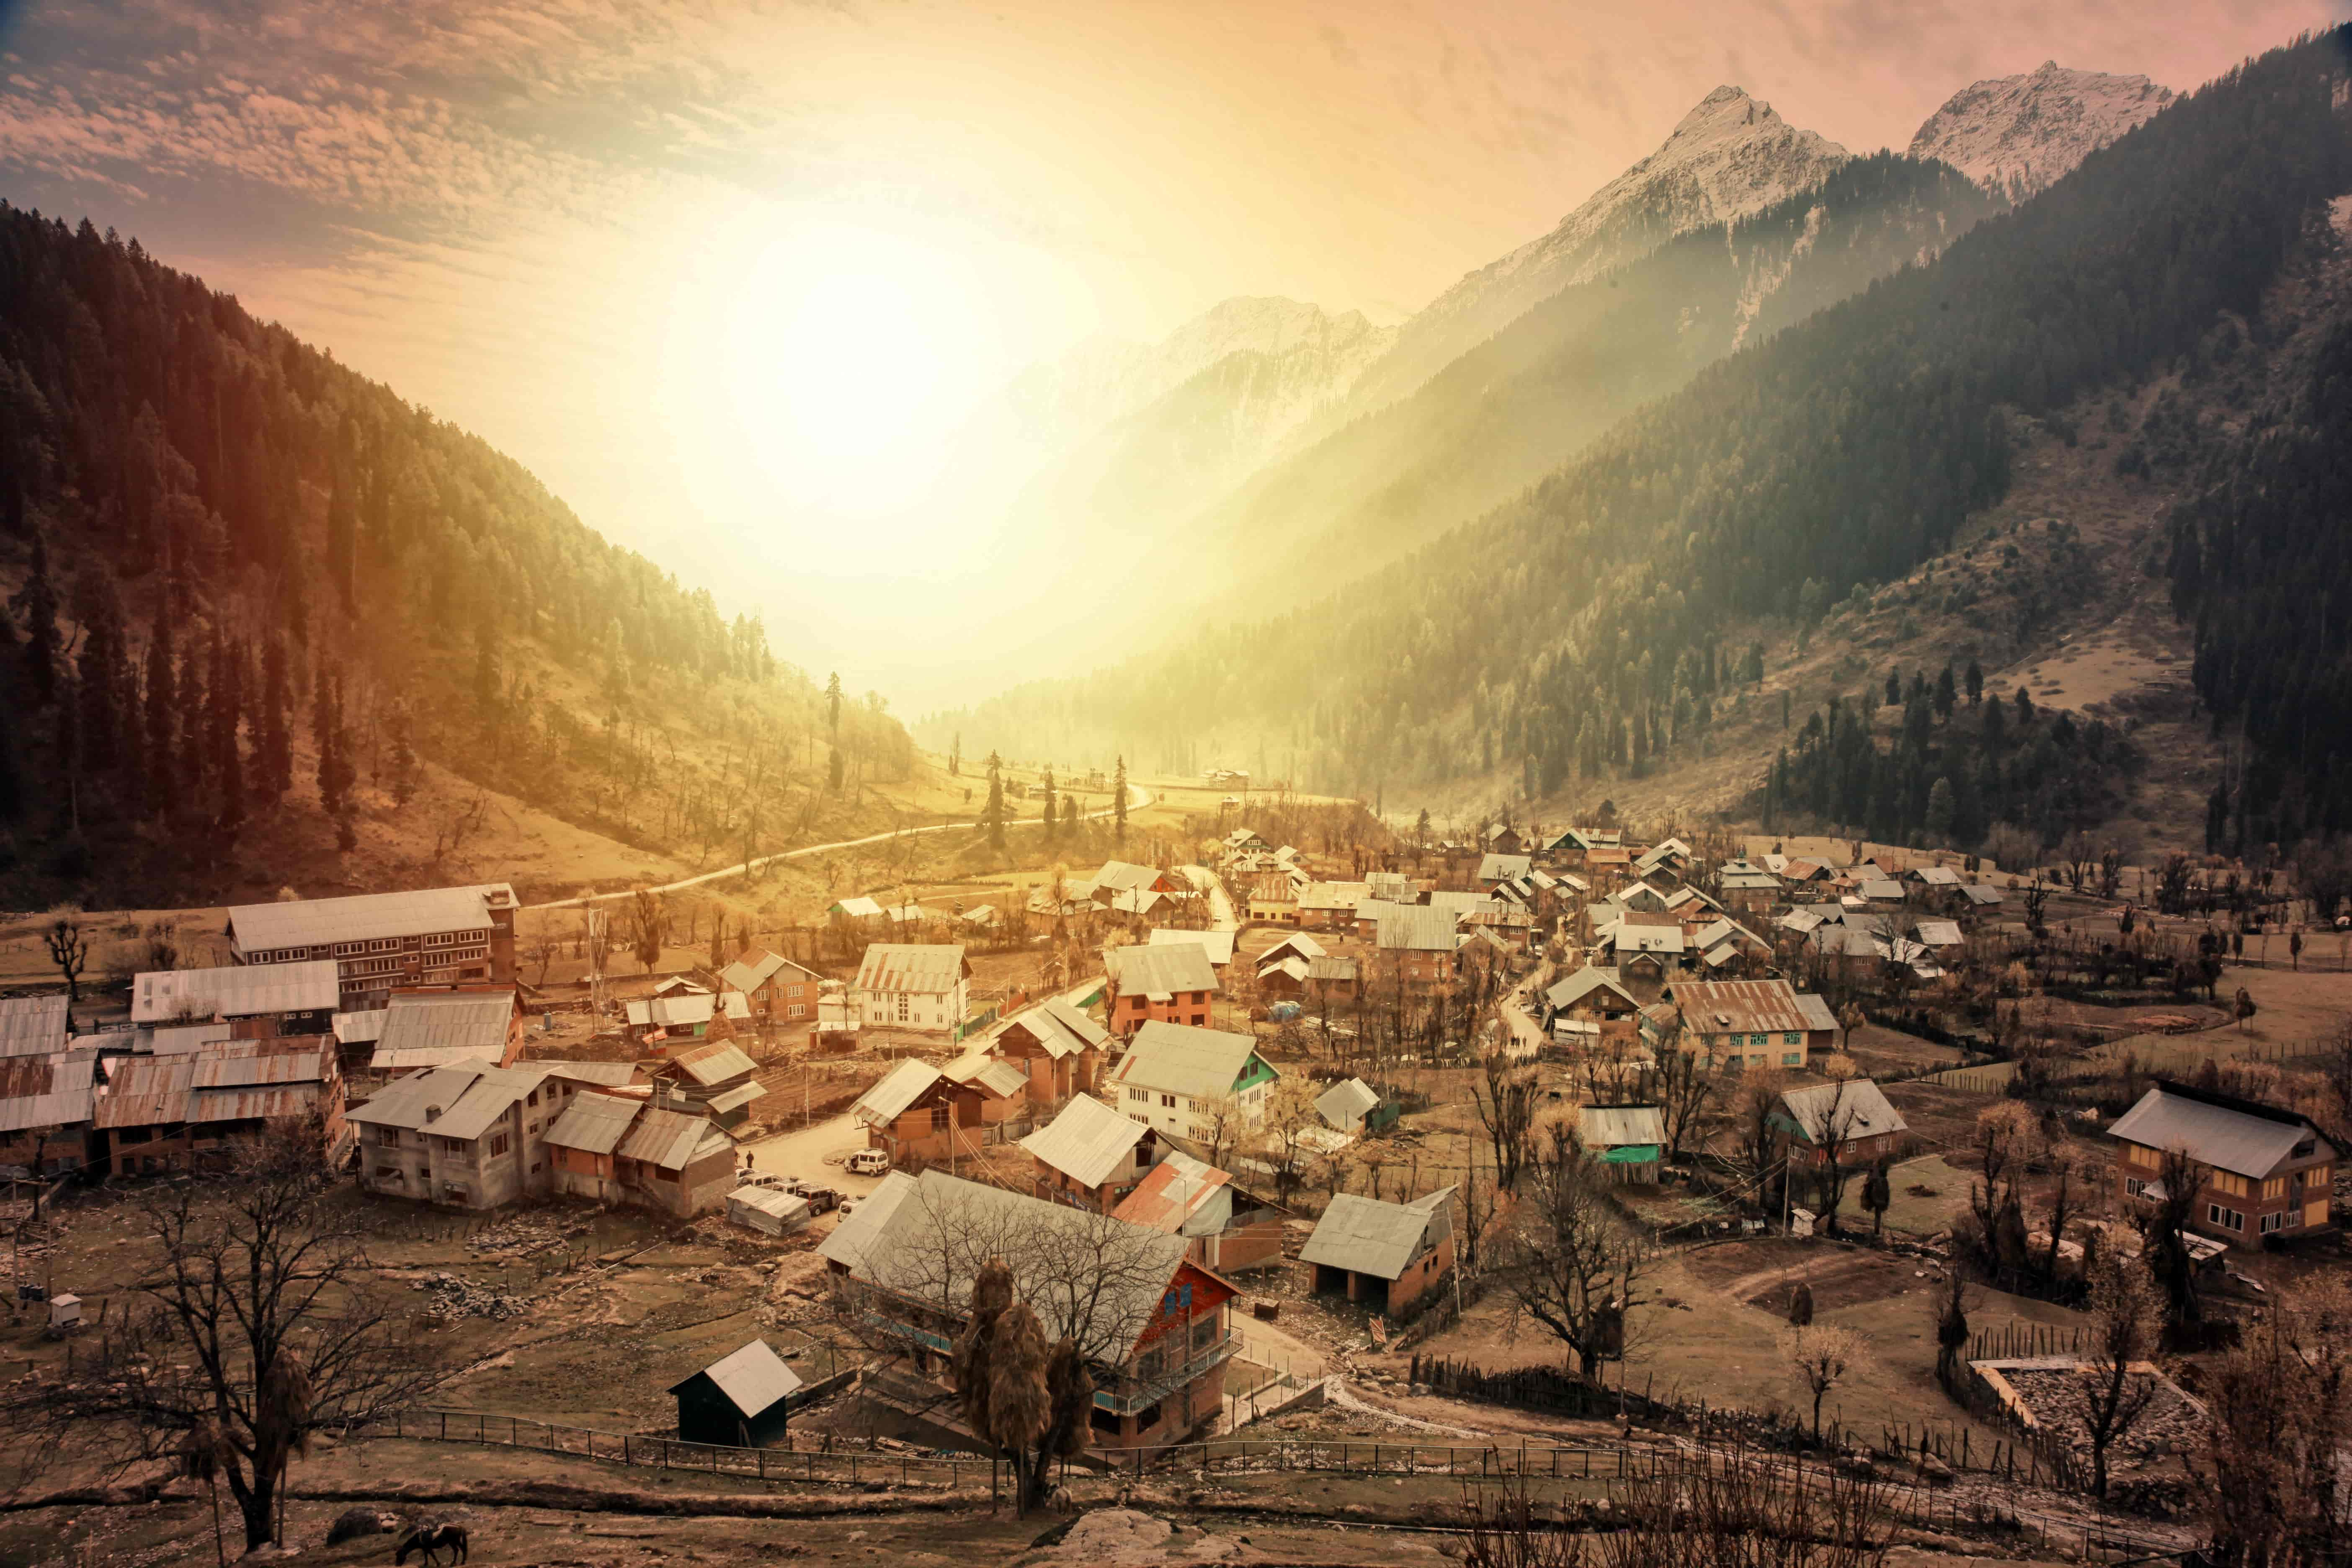 Morning view of a town at Aru Valley near Pahalgam